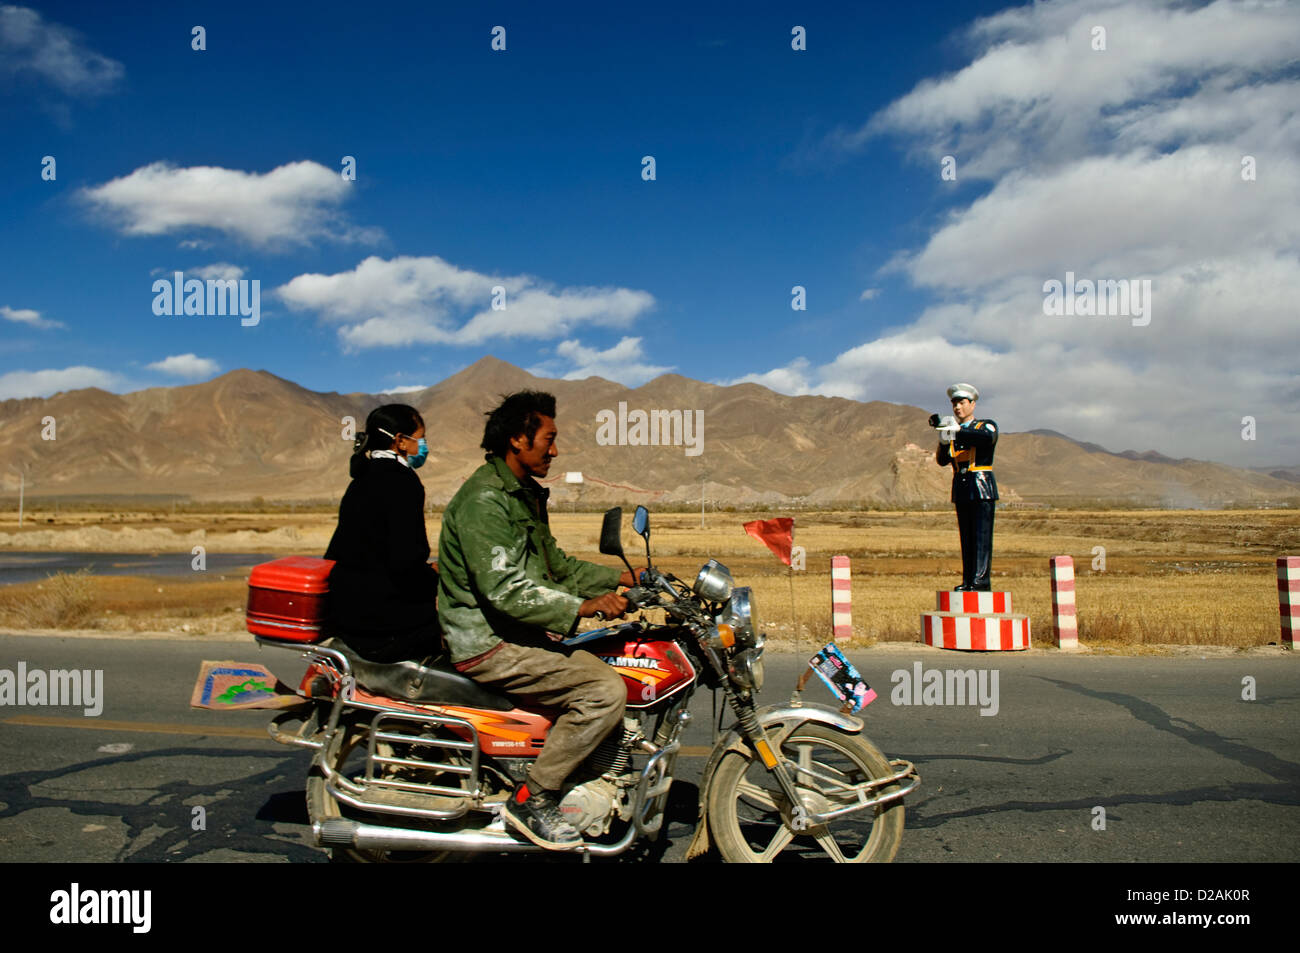 two people on a motorcycle passing by a fake policeman, tibet - Stock Image